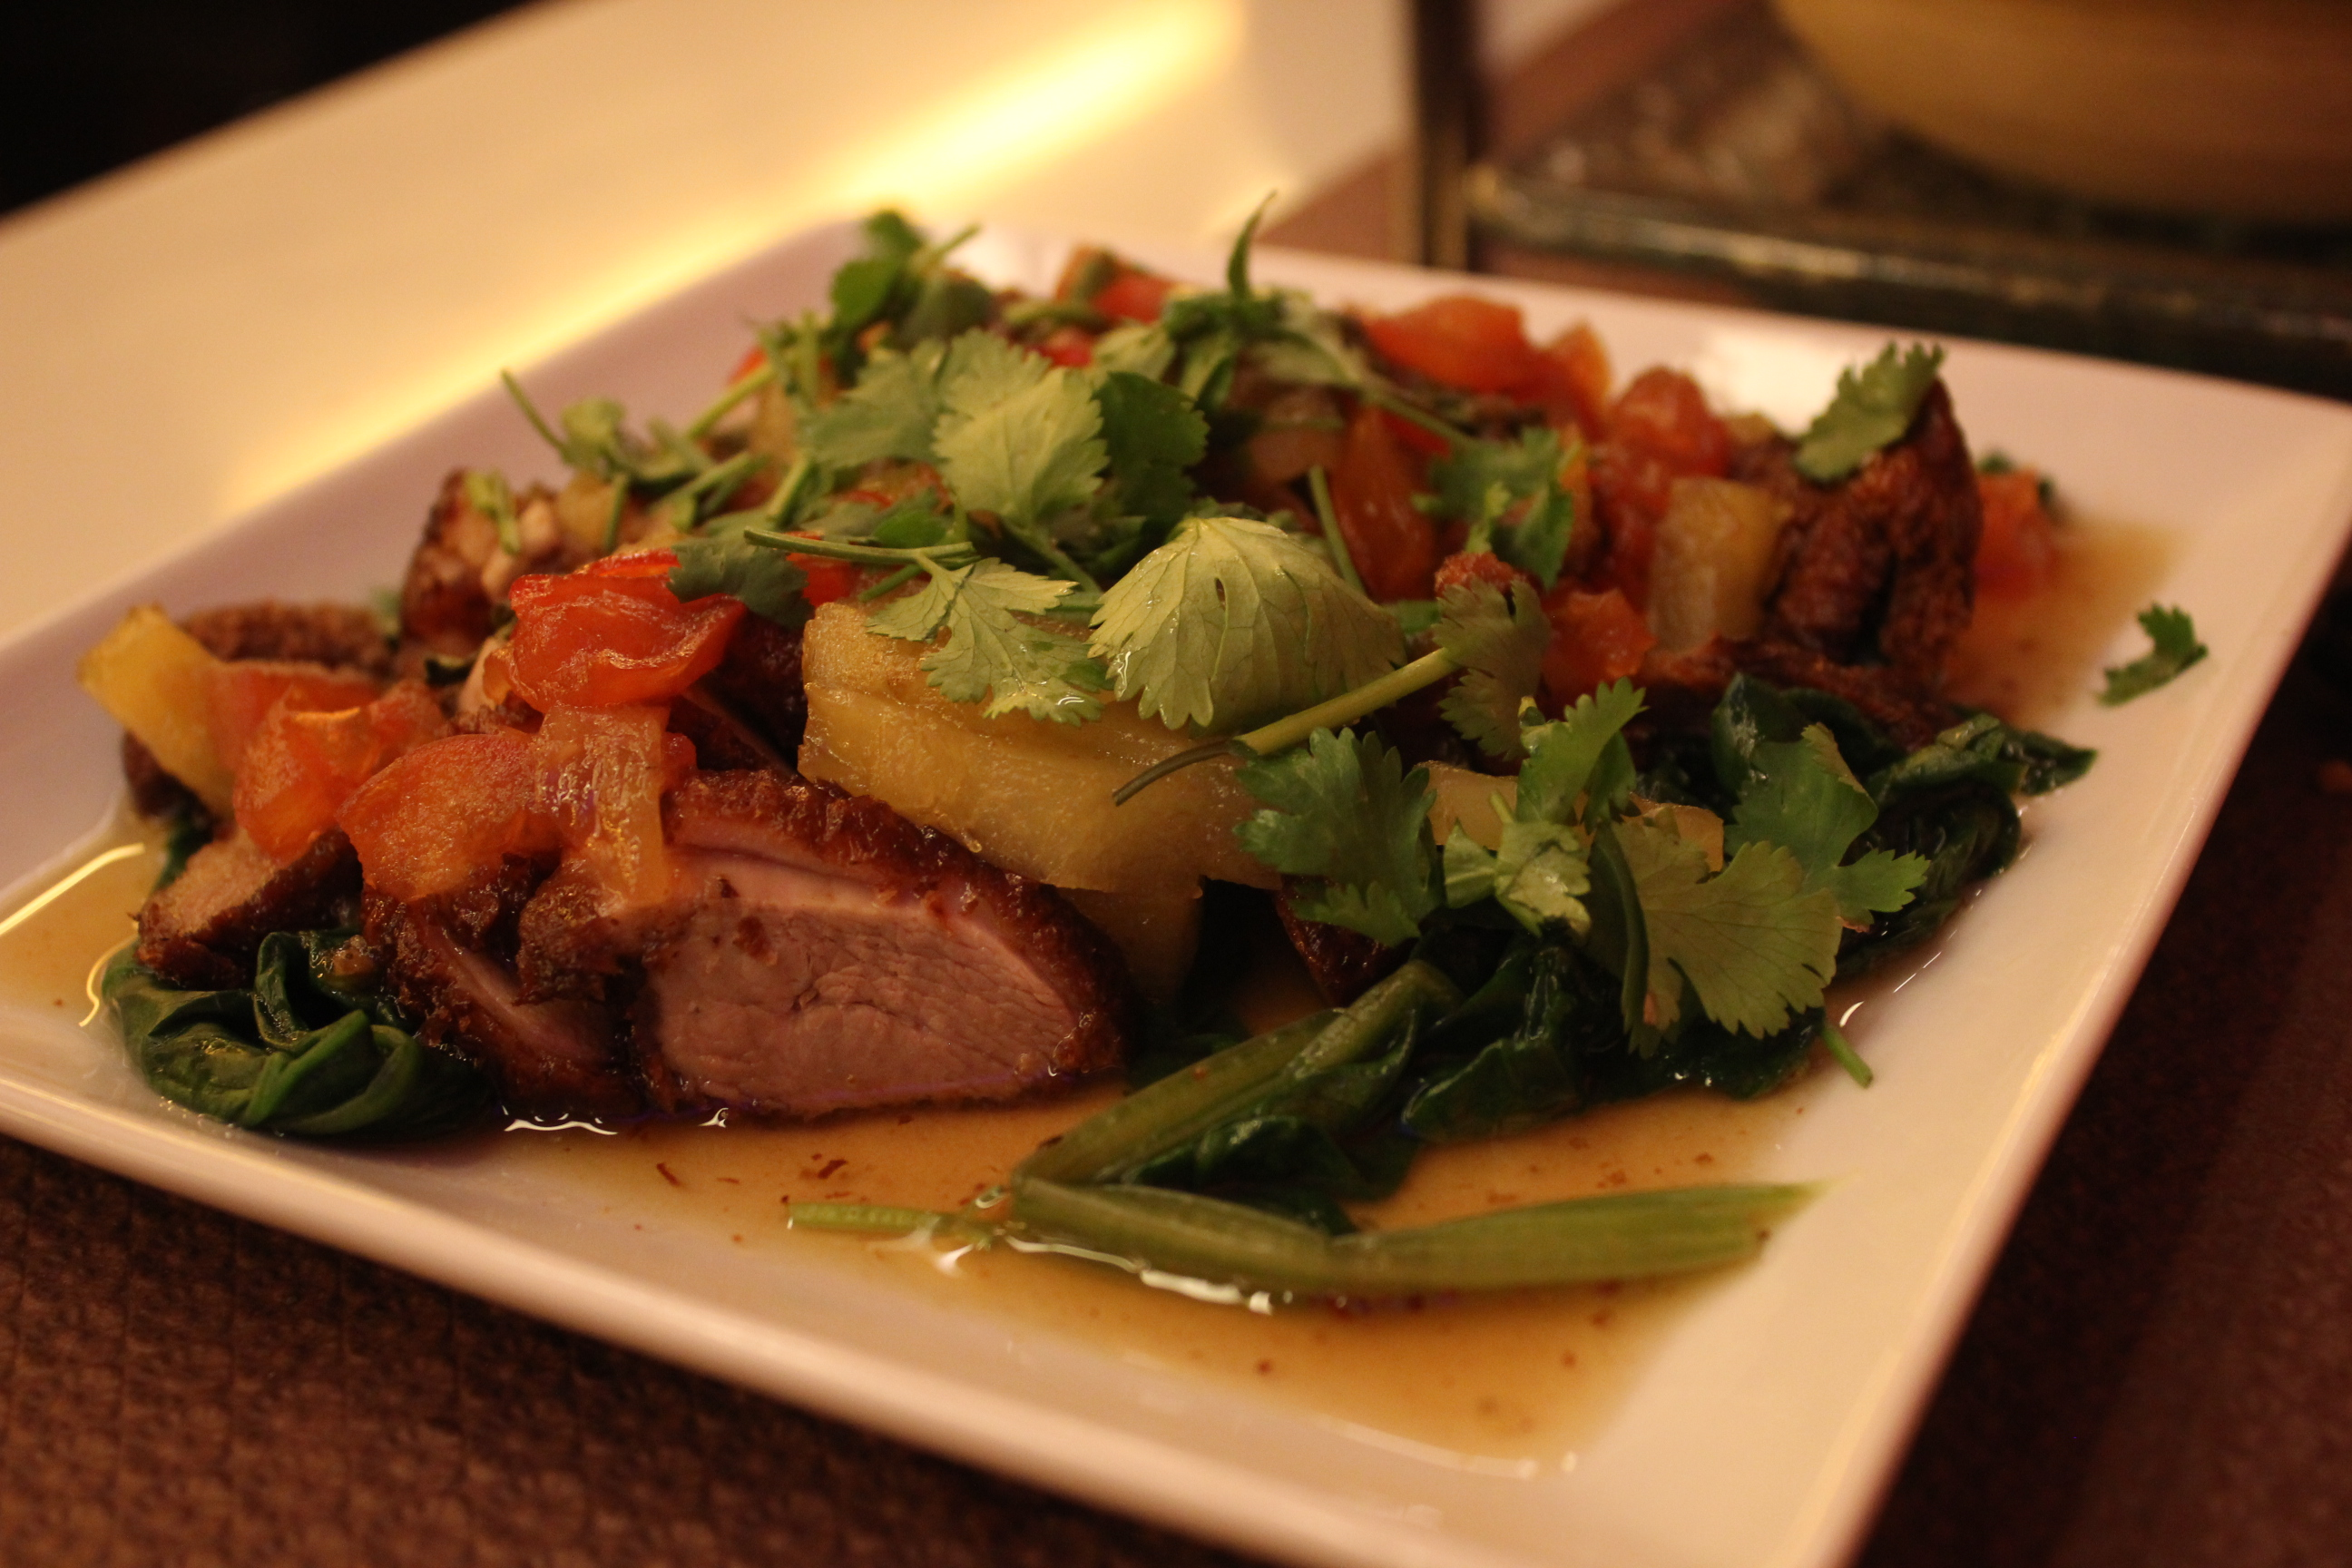 Go khmer authentic cambodian food in paris pearlspotting for A taste of cambodian cuisine